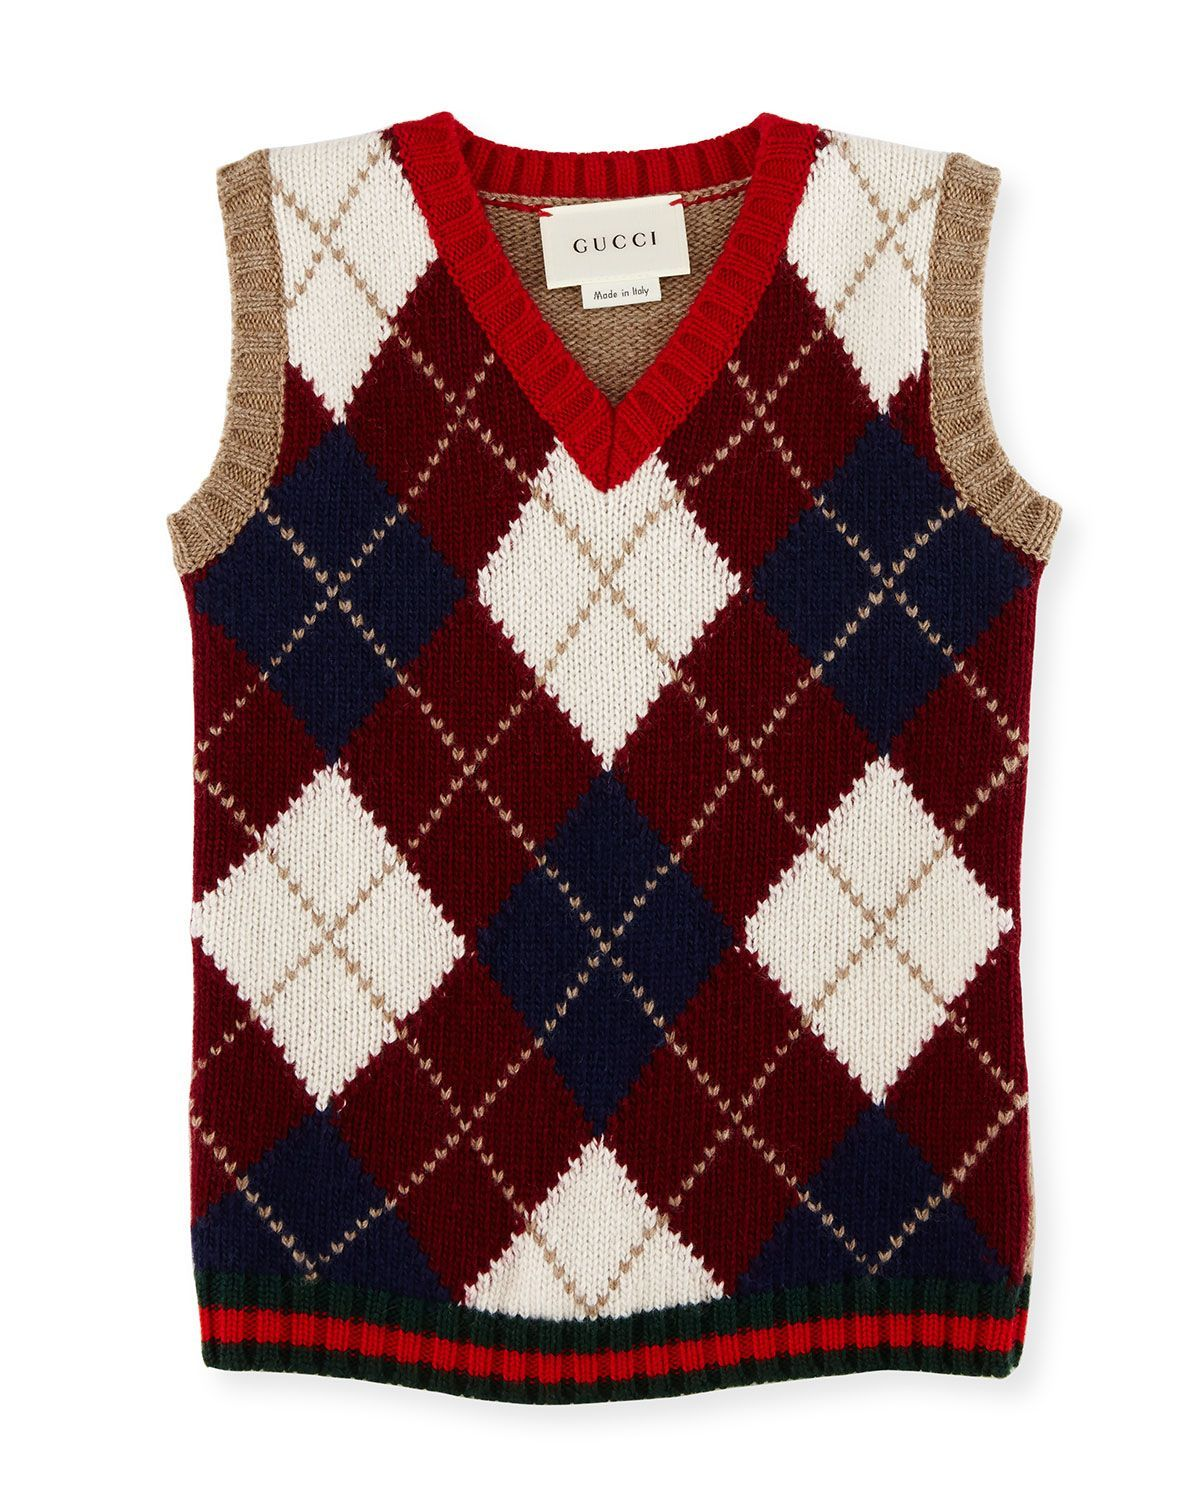 Gilet Wool Argyle Sweater Vest, Camel/Red/Green, Size 6-36 Months